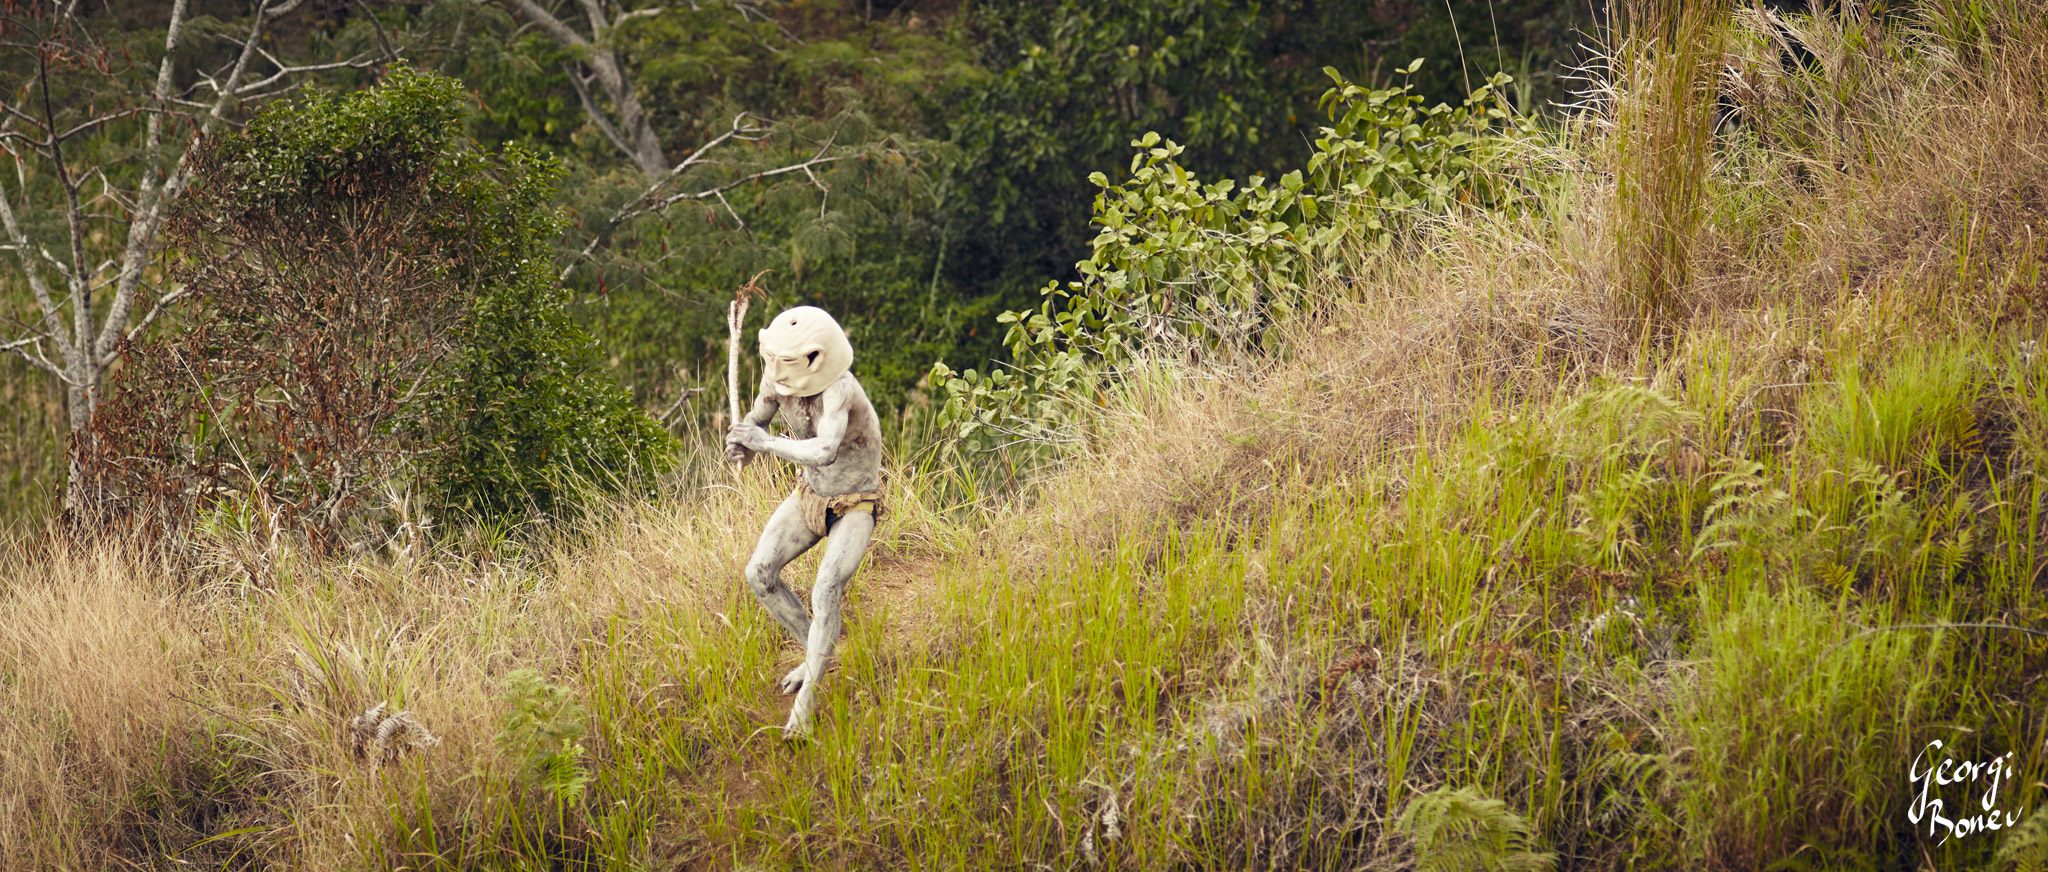 KAUPA FROM ASARO MUDMEN TRIBE APPEARING AS GHOST FROM THE FOREST IN PAPUA NEW GUINEA